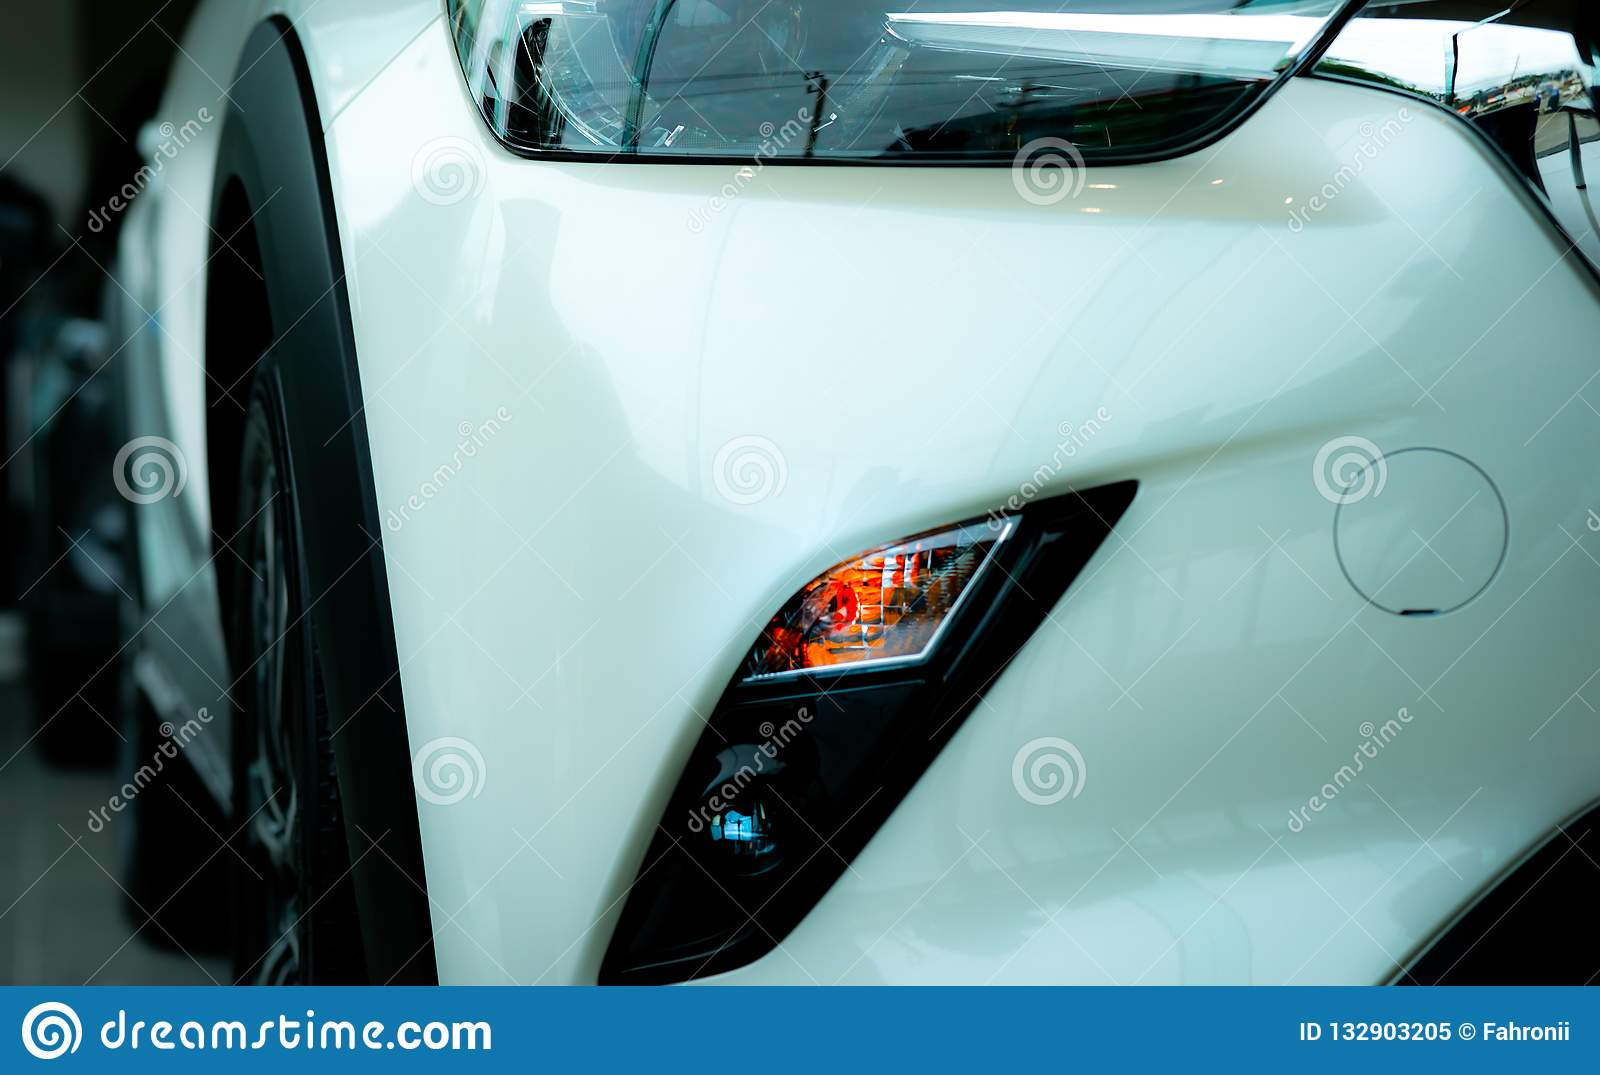 New Luxury White Car Parked In Modern Showroom Car Dealership Office Electric Or Hybrid Car Technology And Business Concept Stock Image Image Of Dealer Luxury 132903205